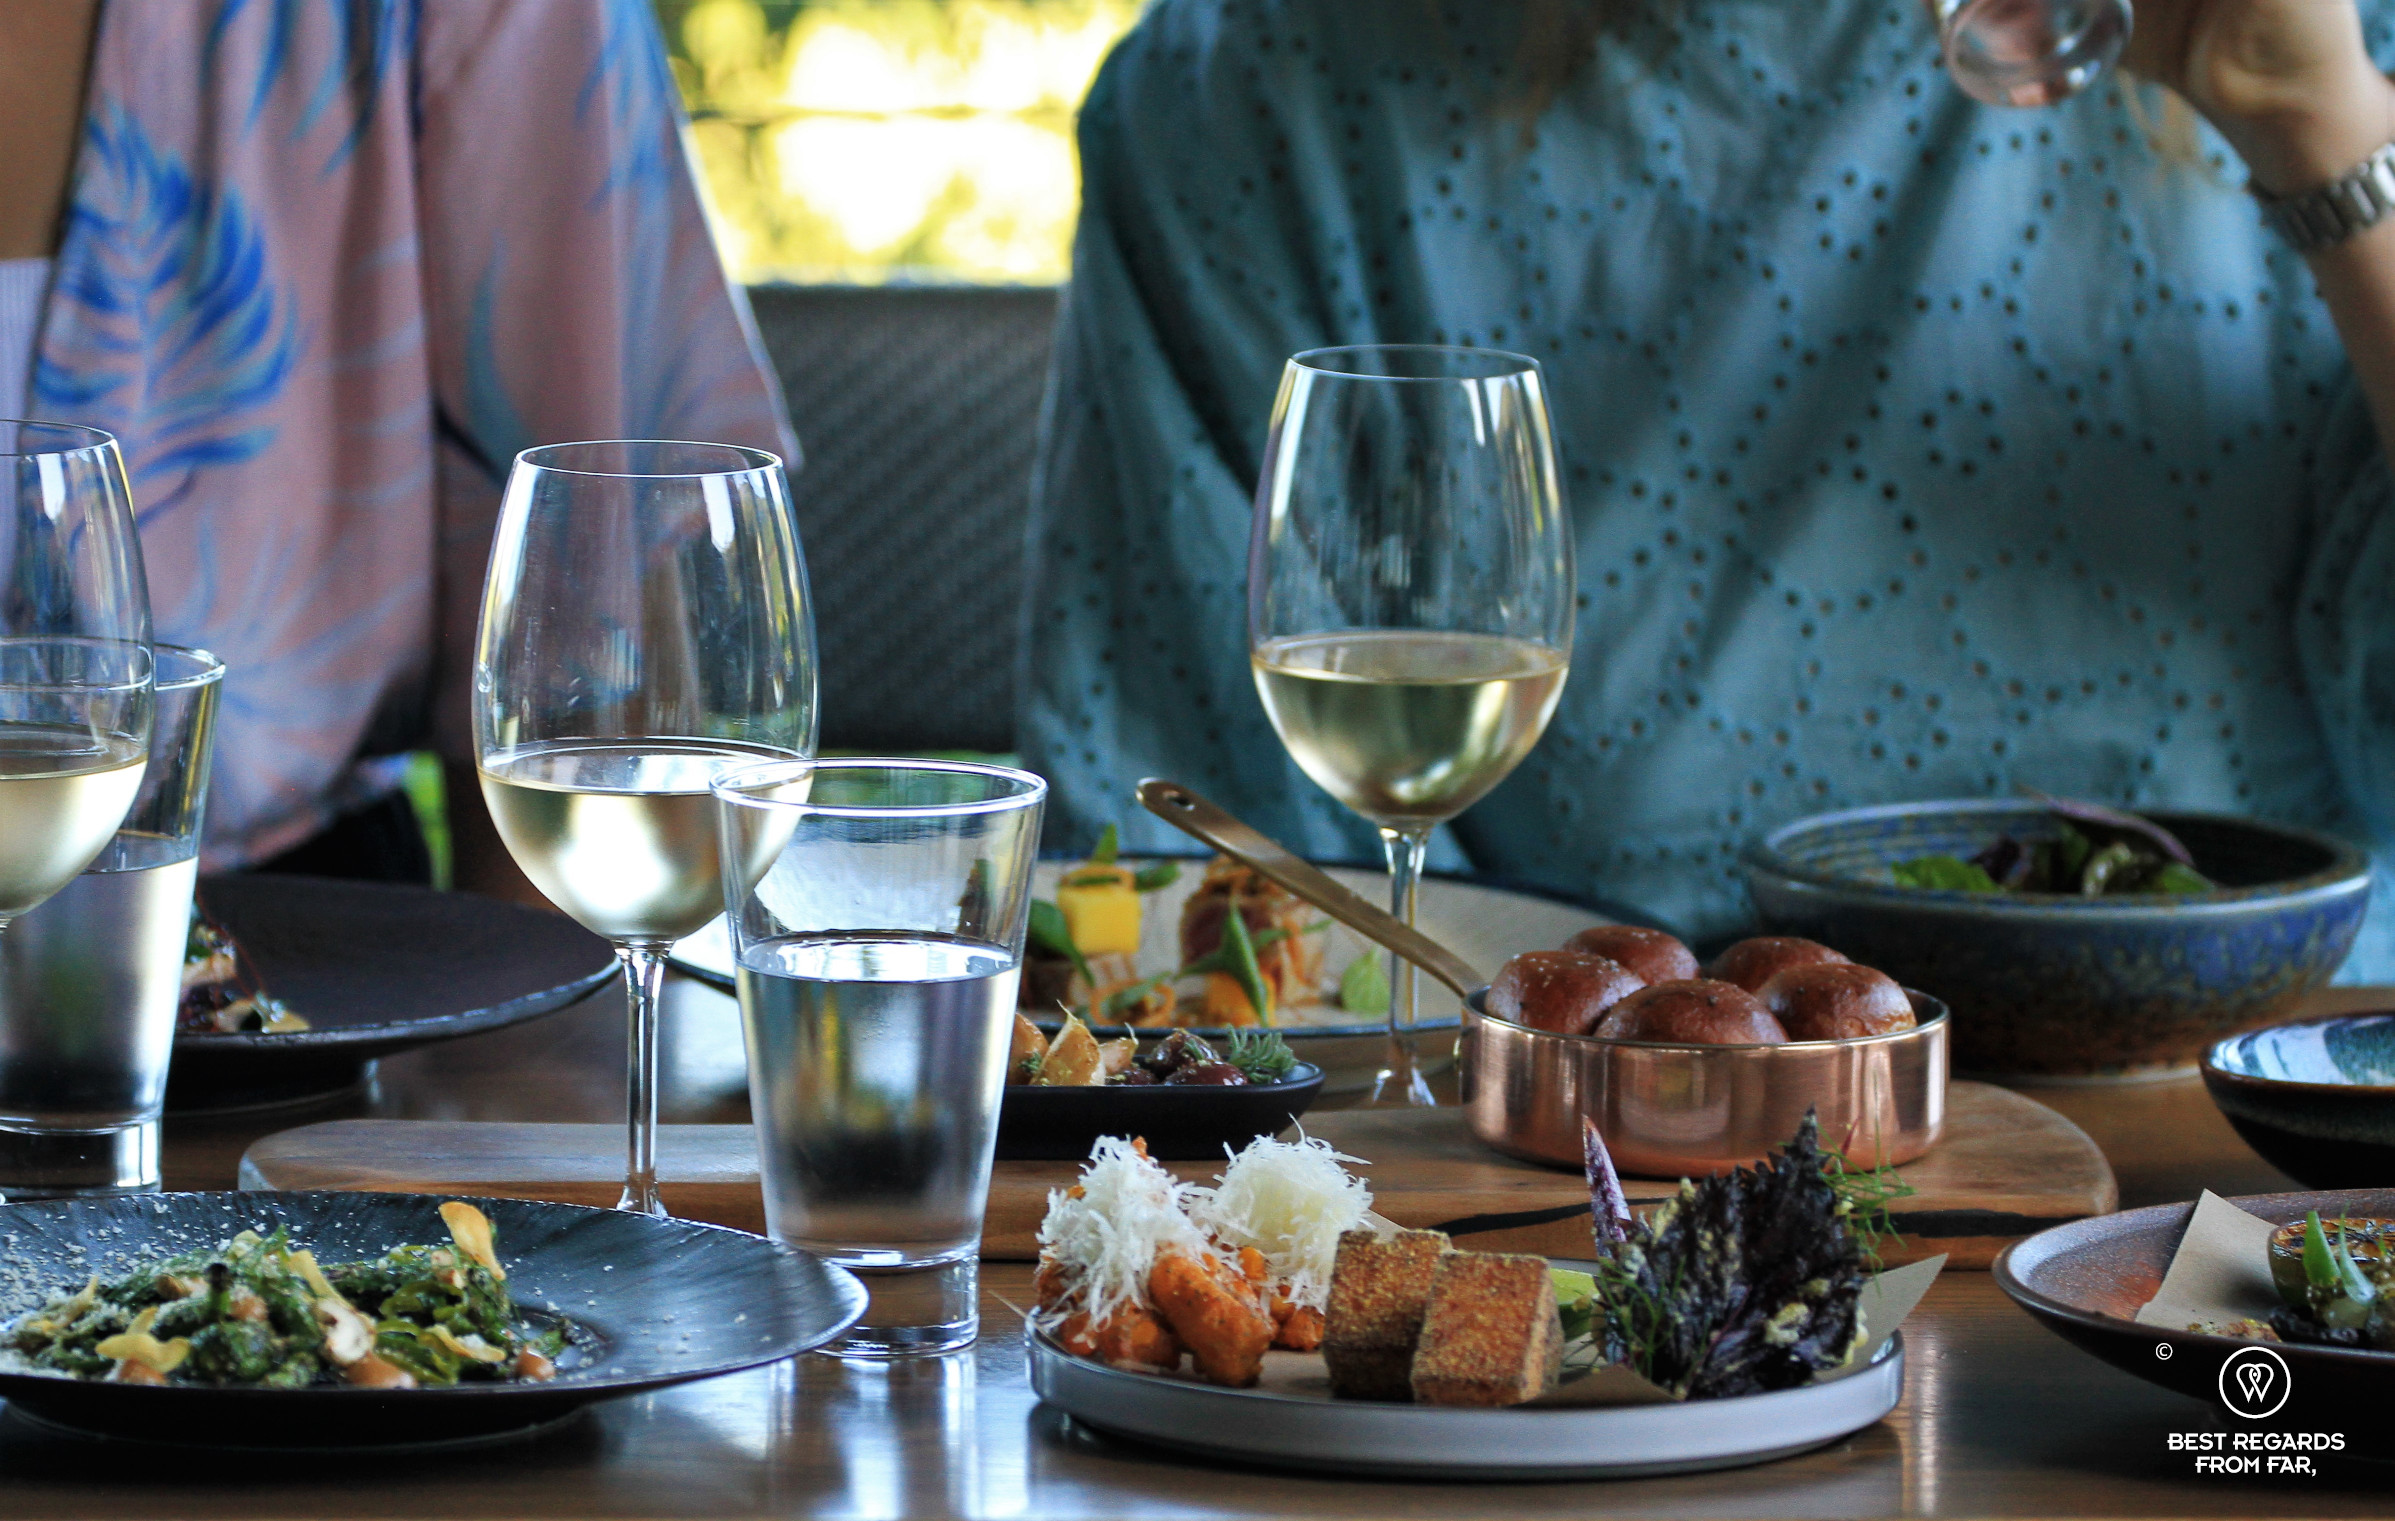 Guests seating for lunch and sharing tapas and wine at the Chefs Warehouse Beau Constantia